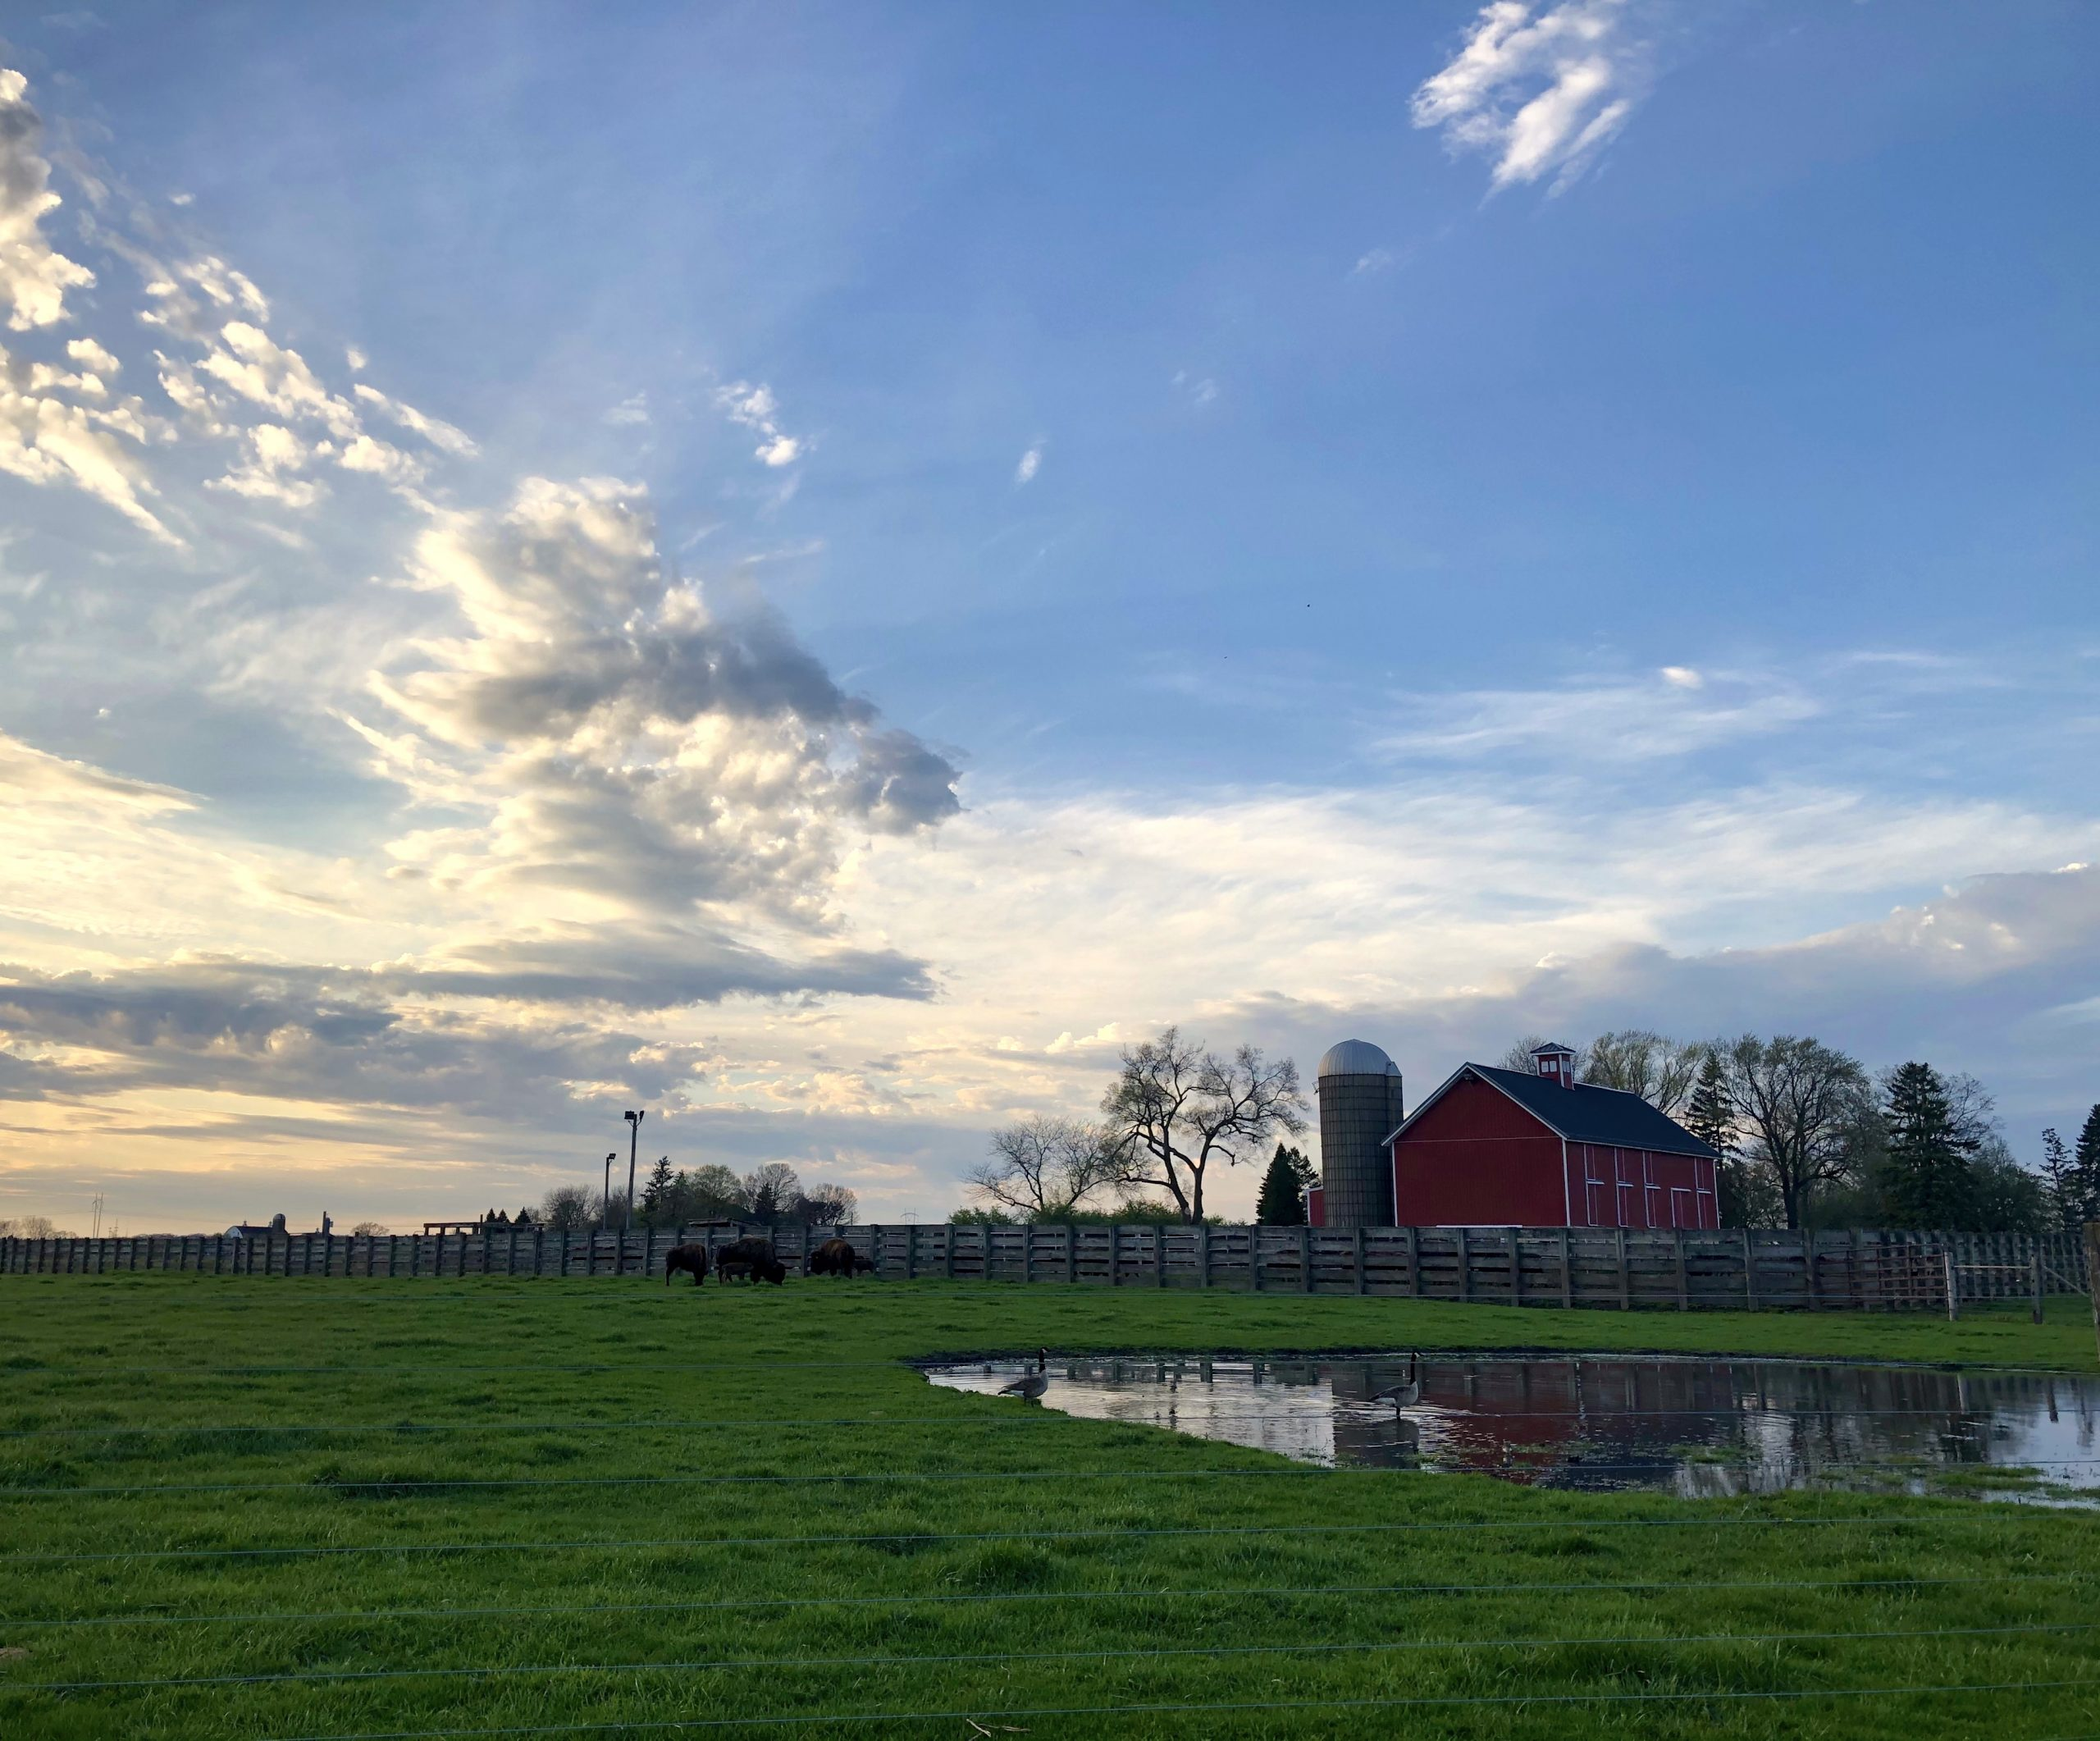 It's a majestic day for a majestic animal. nature, landscape, wildlife, animal, mammal, bison, sky, cloud, barn, building Photo: Maria Martinez Casales